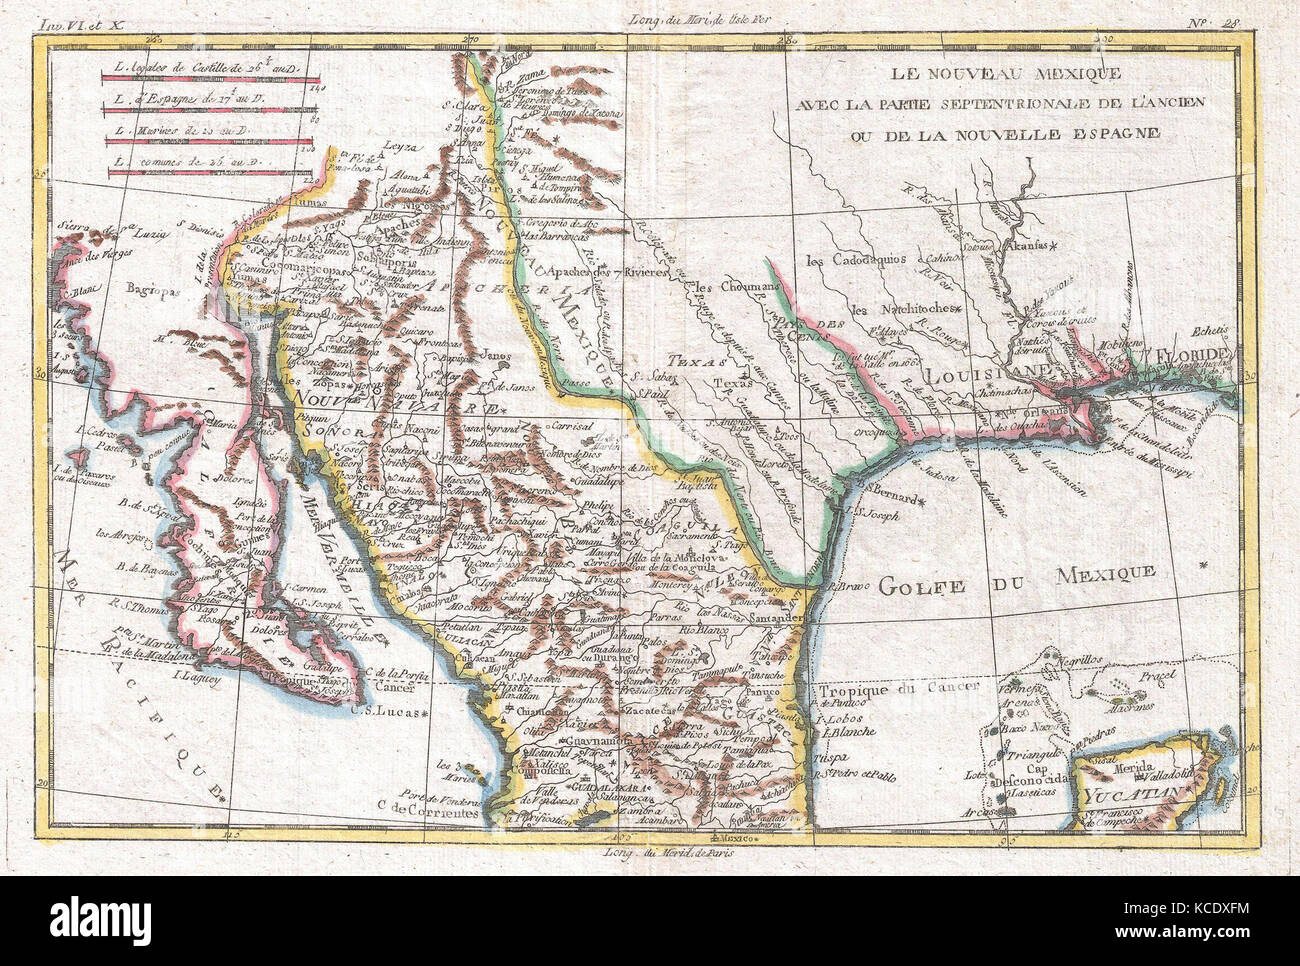 Mexico Map 1794.1780 Raynal And Bonne Map Of Mexico And Texas Rigobert Bonne 1727